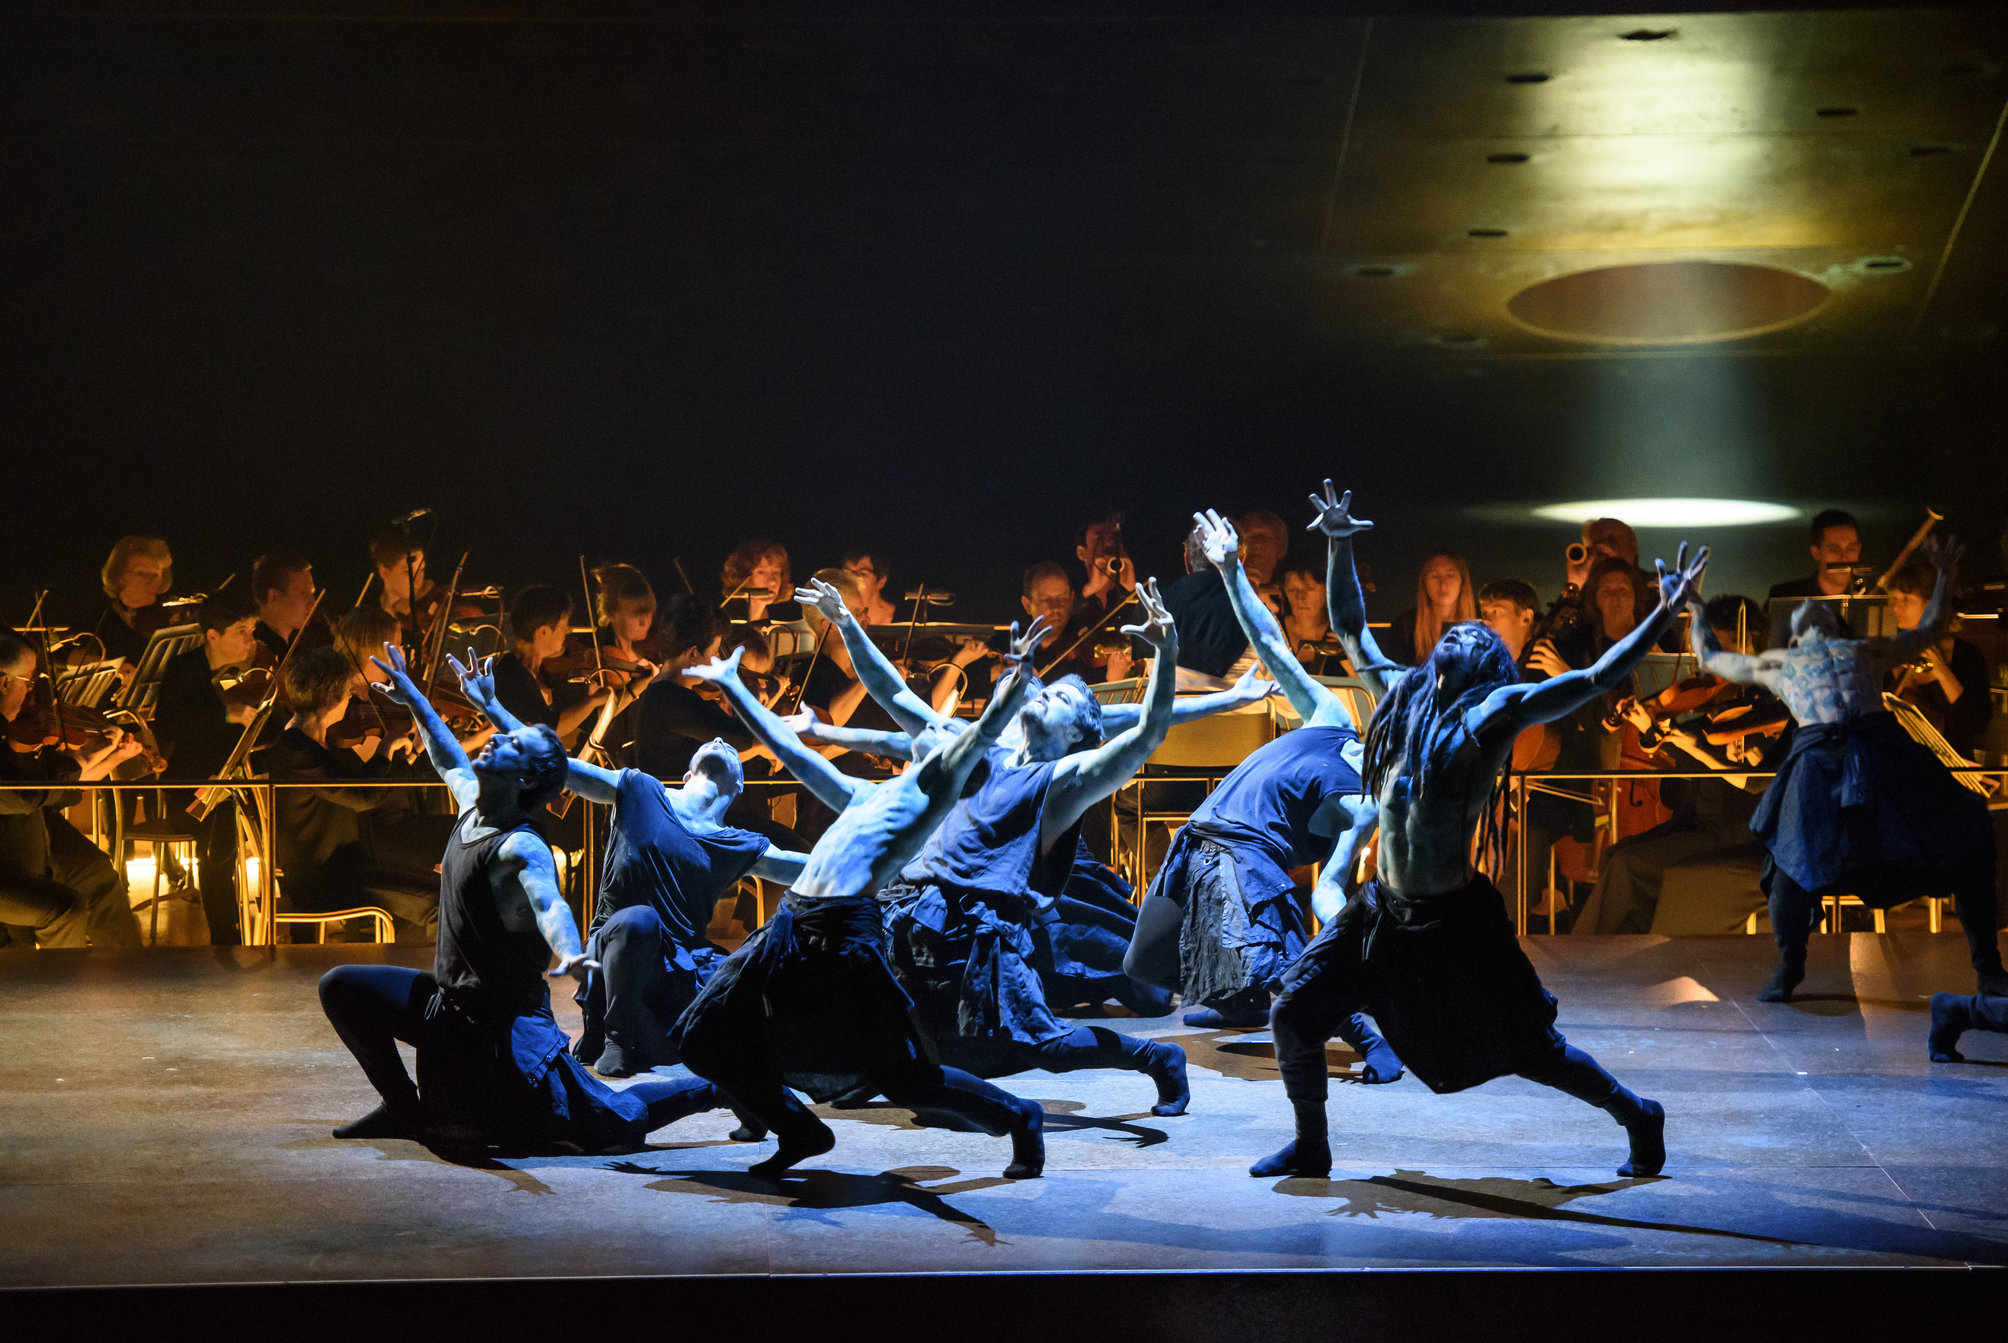 Orphee Et Eurydice Stage Rehearsal Roh;director; John Fulljames,choreography; Hofesh Shechter,performers,conductor; John Eliot Gardiner,orphee; Juan Diego Florez,eurydice; Lucy Crowe,amour; Amanda Forsythe,dancers; Hofesh Shechter Company, Chor